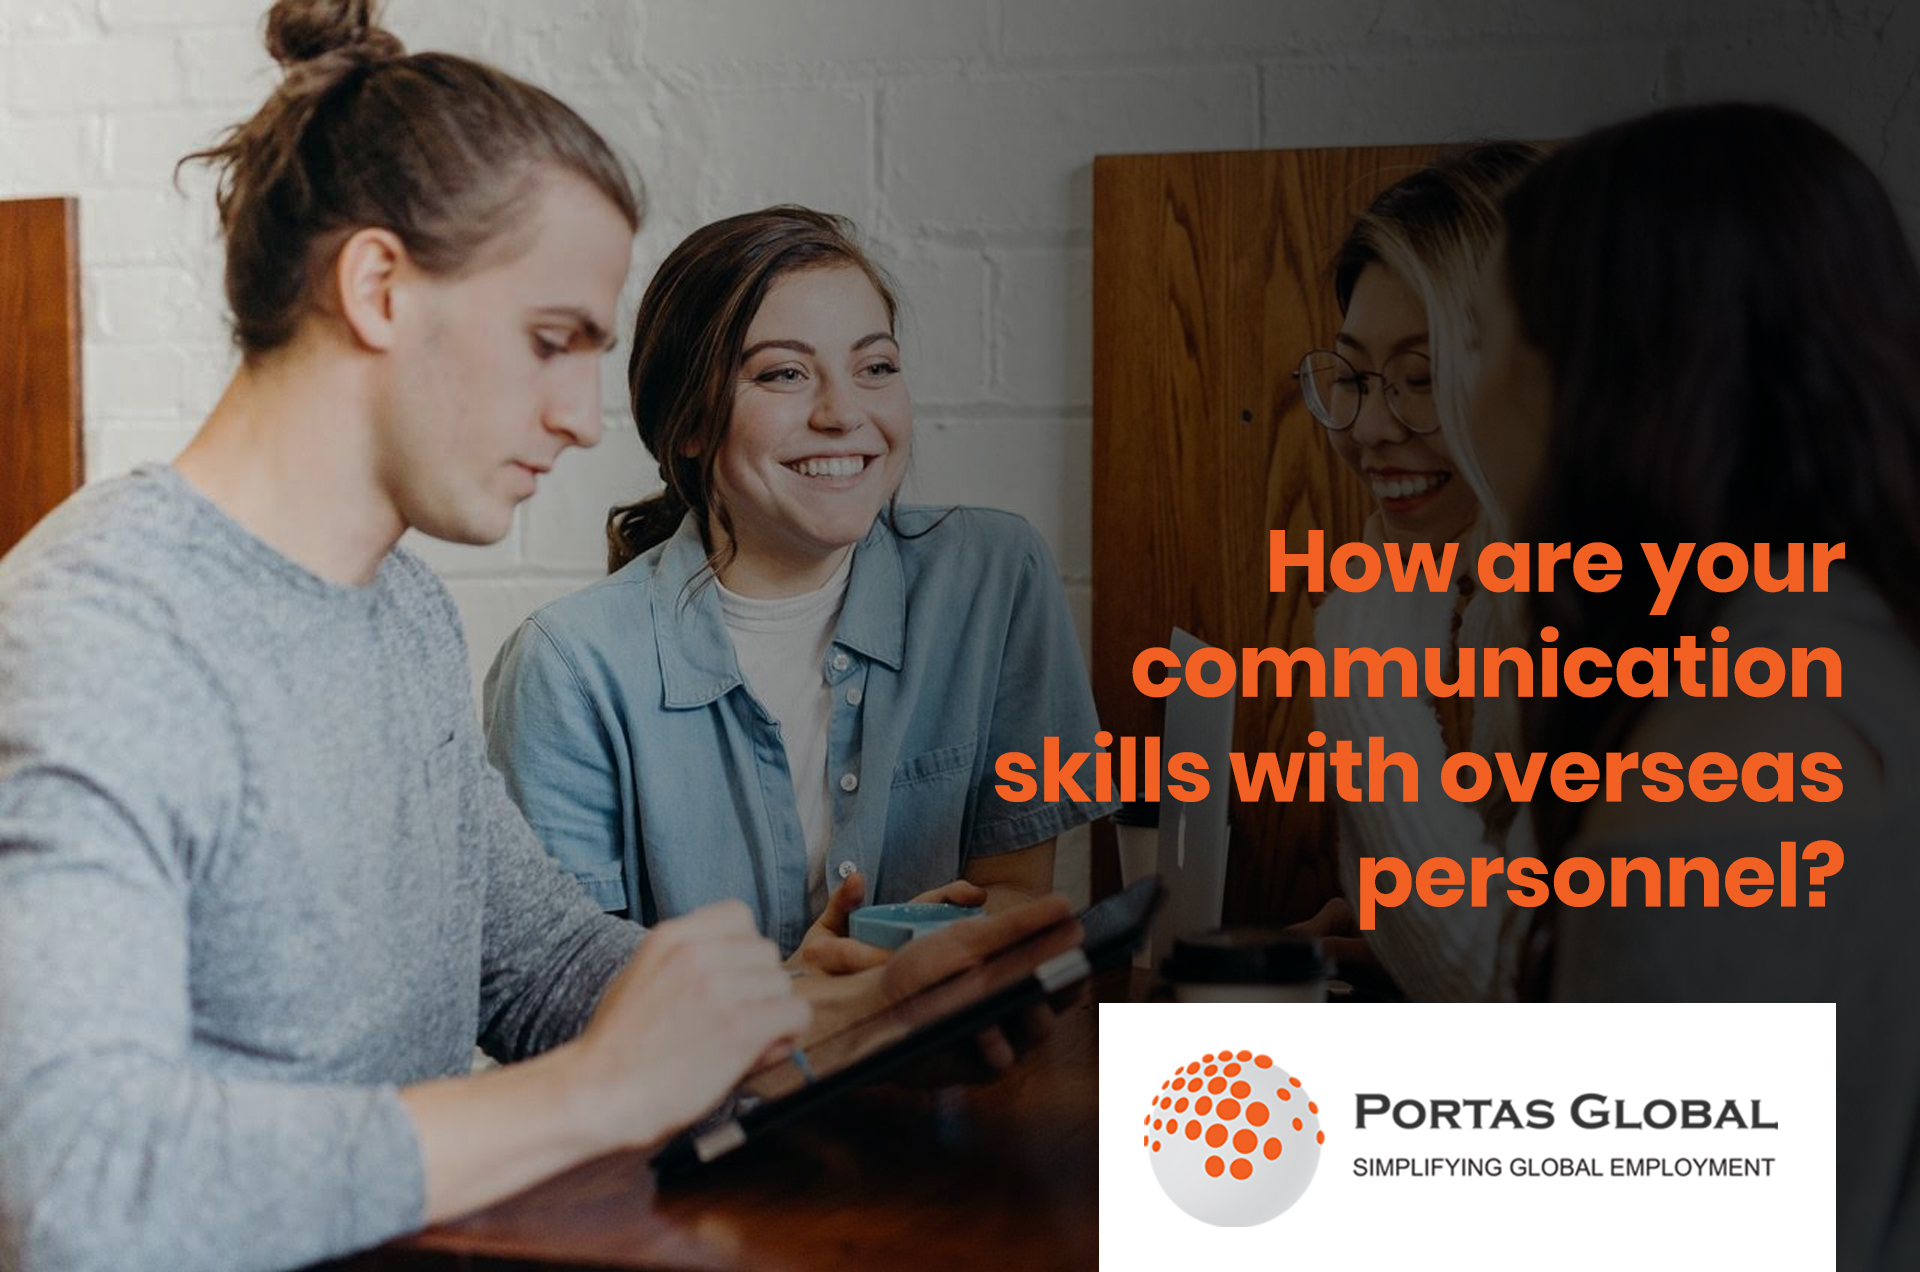 How are your communication skills with overseas personnel?